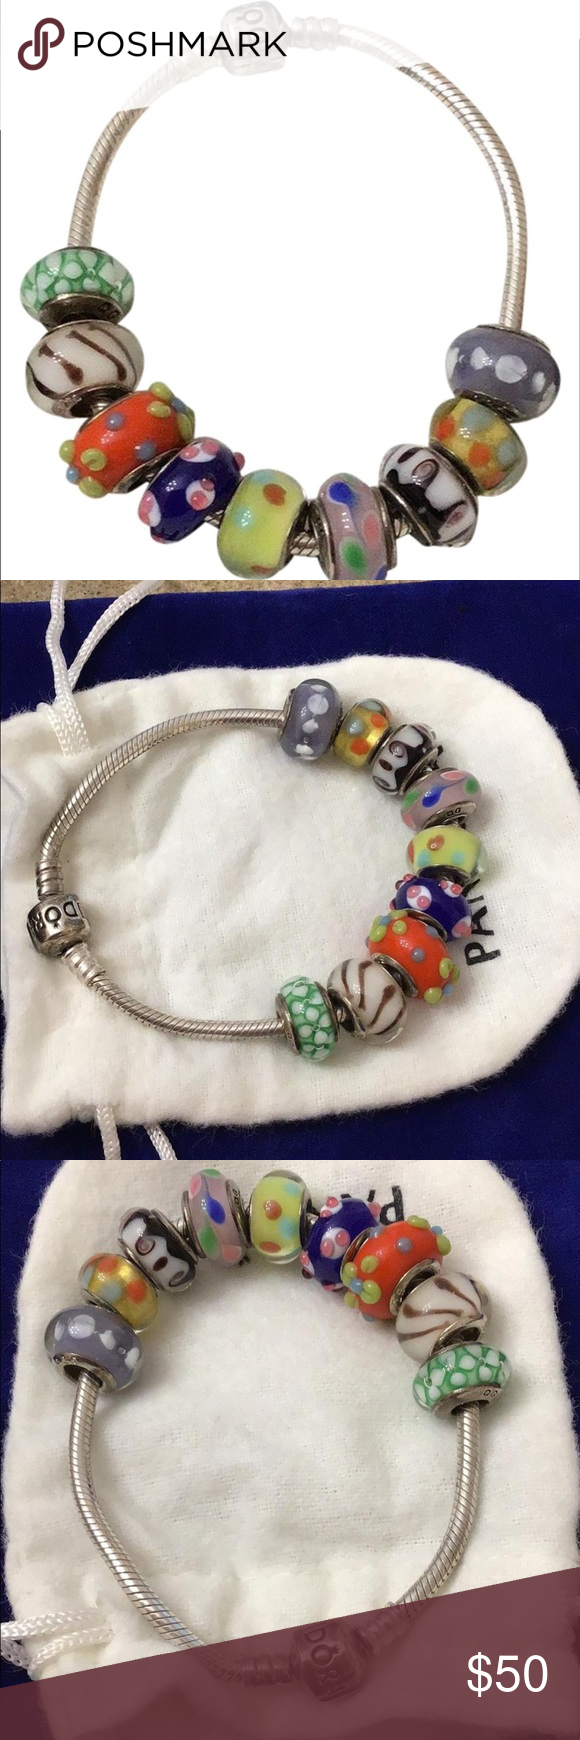 Pandora Bracelet Minor Tarnishing And Scratches Needs Cleaning Some Are Pandora Charms And Some Ar Pandora Bracelet Pandora Jewelry Pandora Jewelry Bracelets